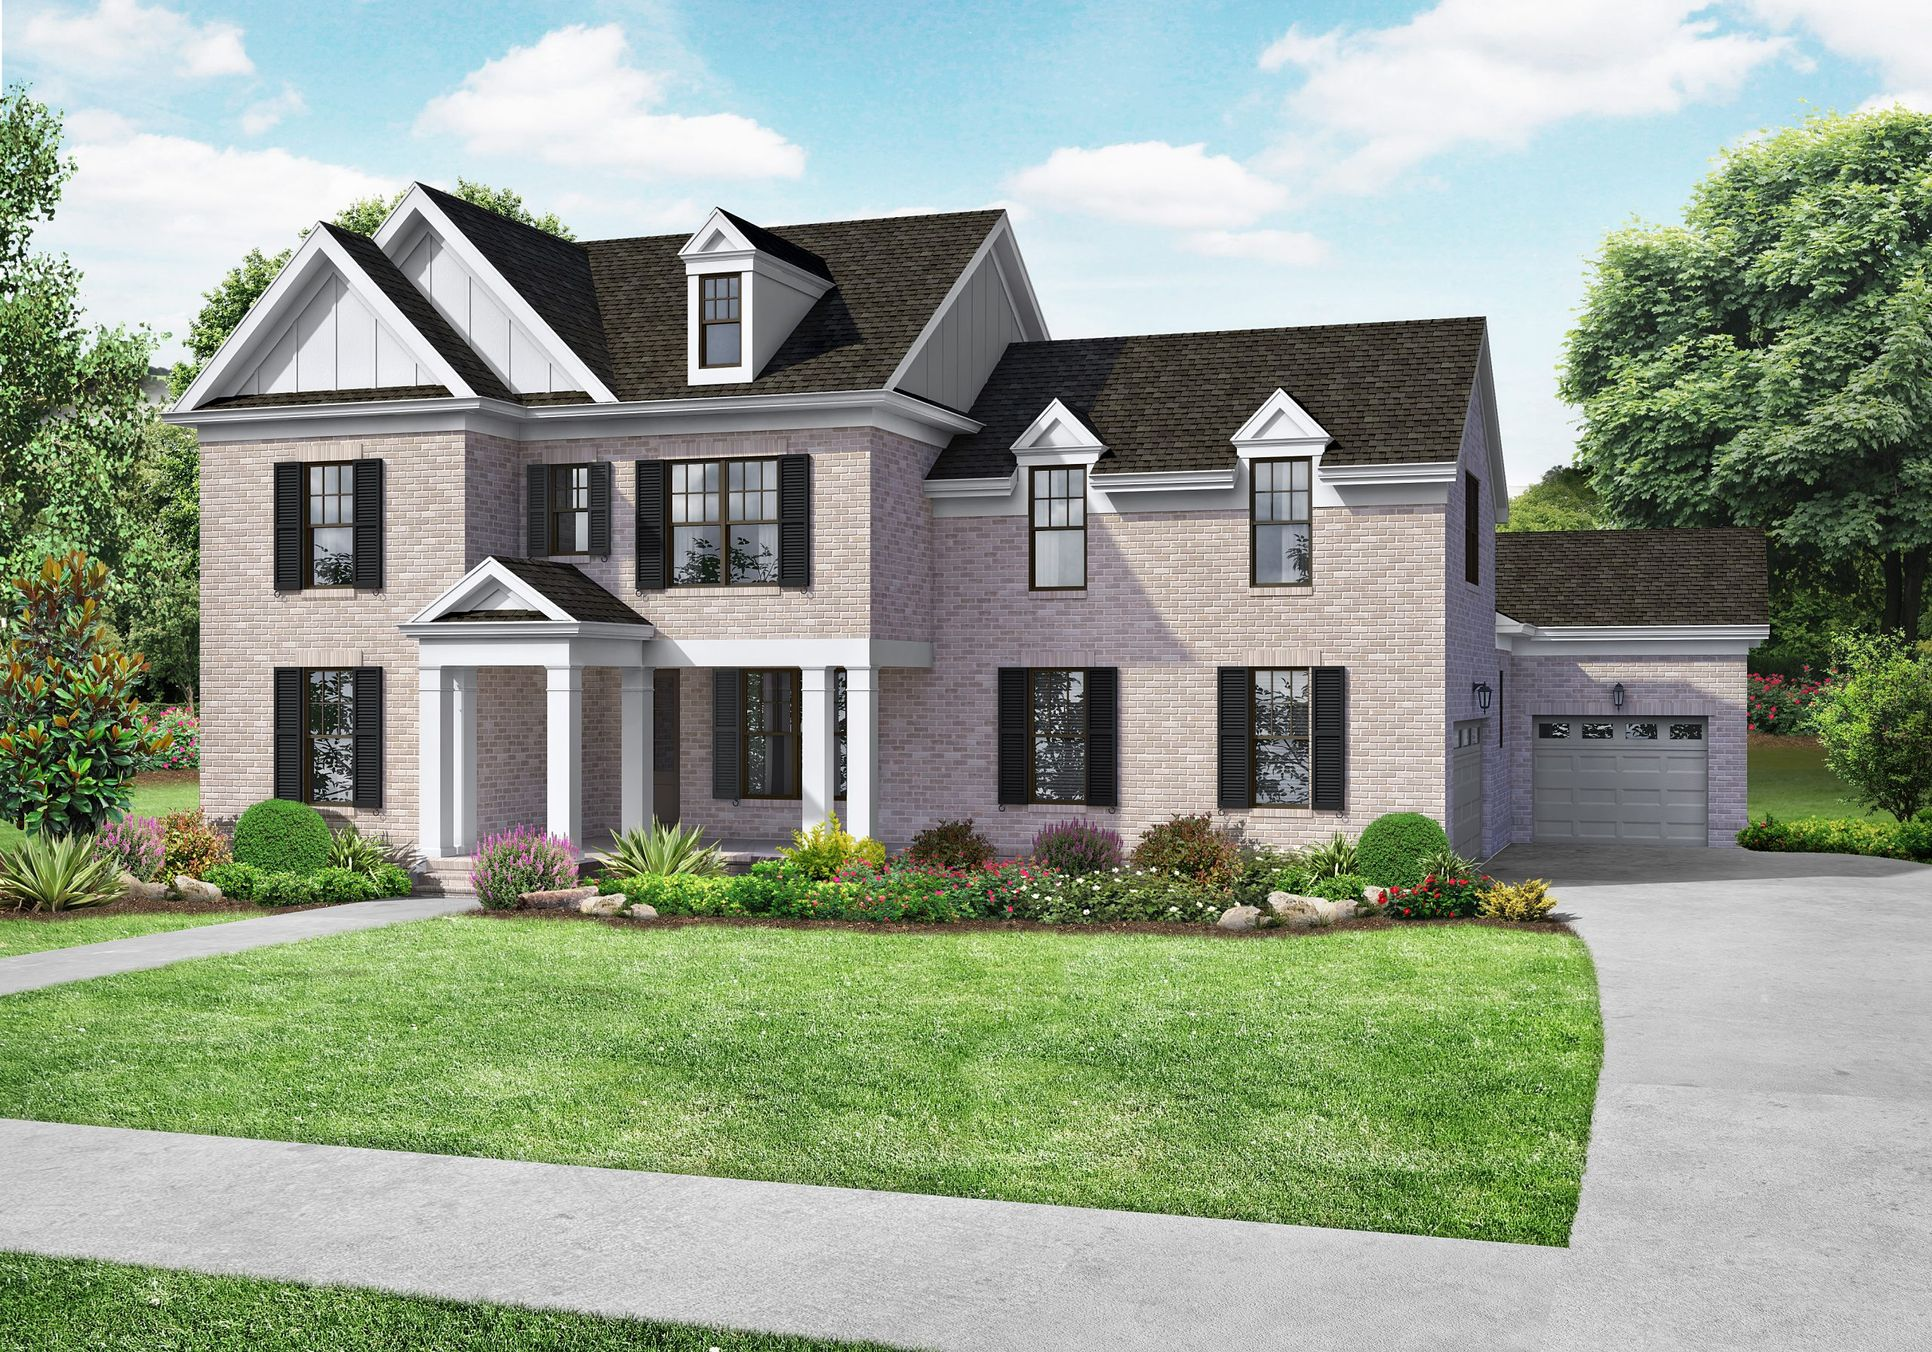 Davidson Homes The Hathaway Plan Exterior Rendering